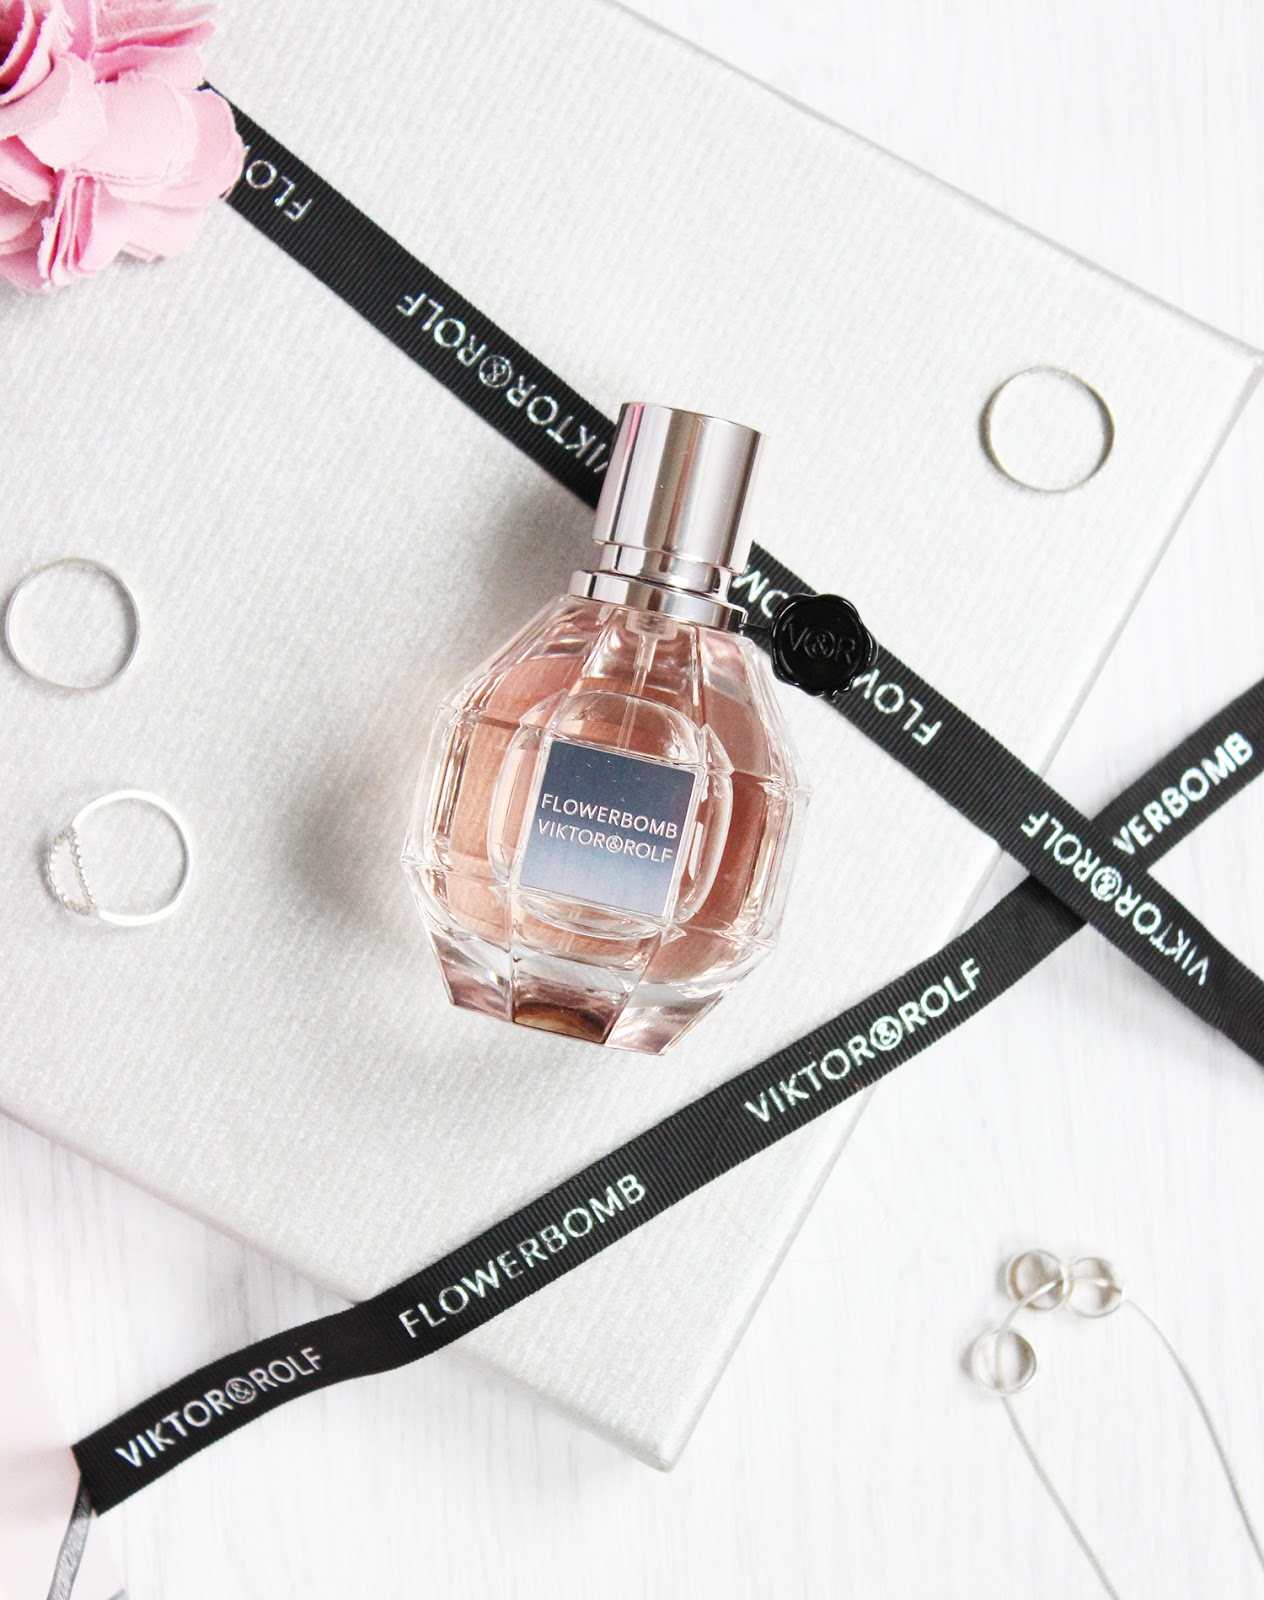 Viktor & Rolf Flowerbomb review and giveaway